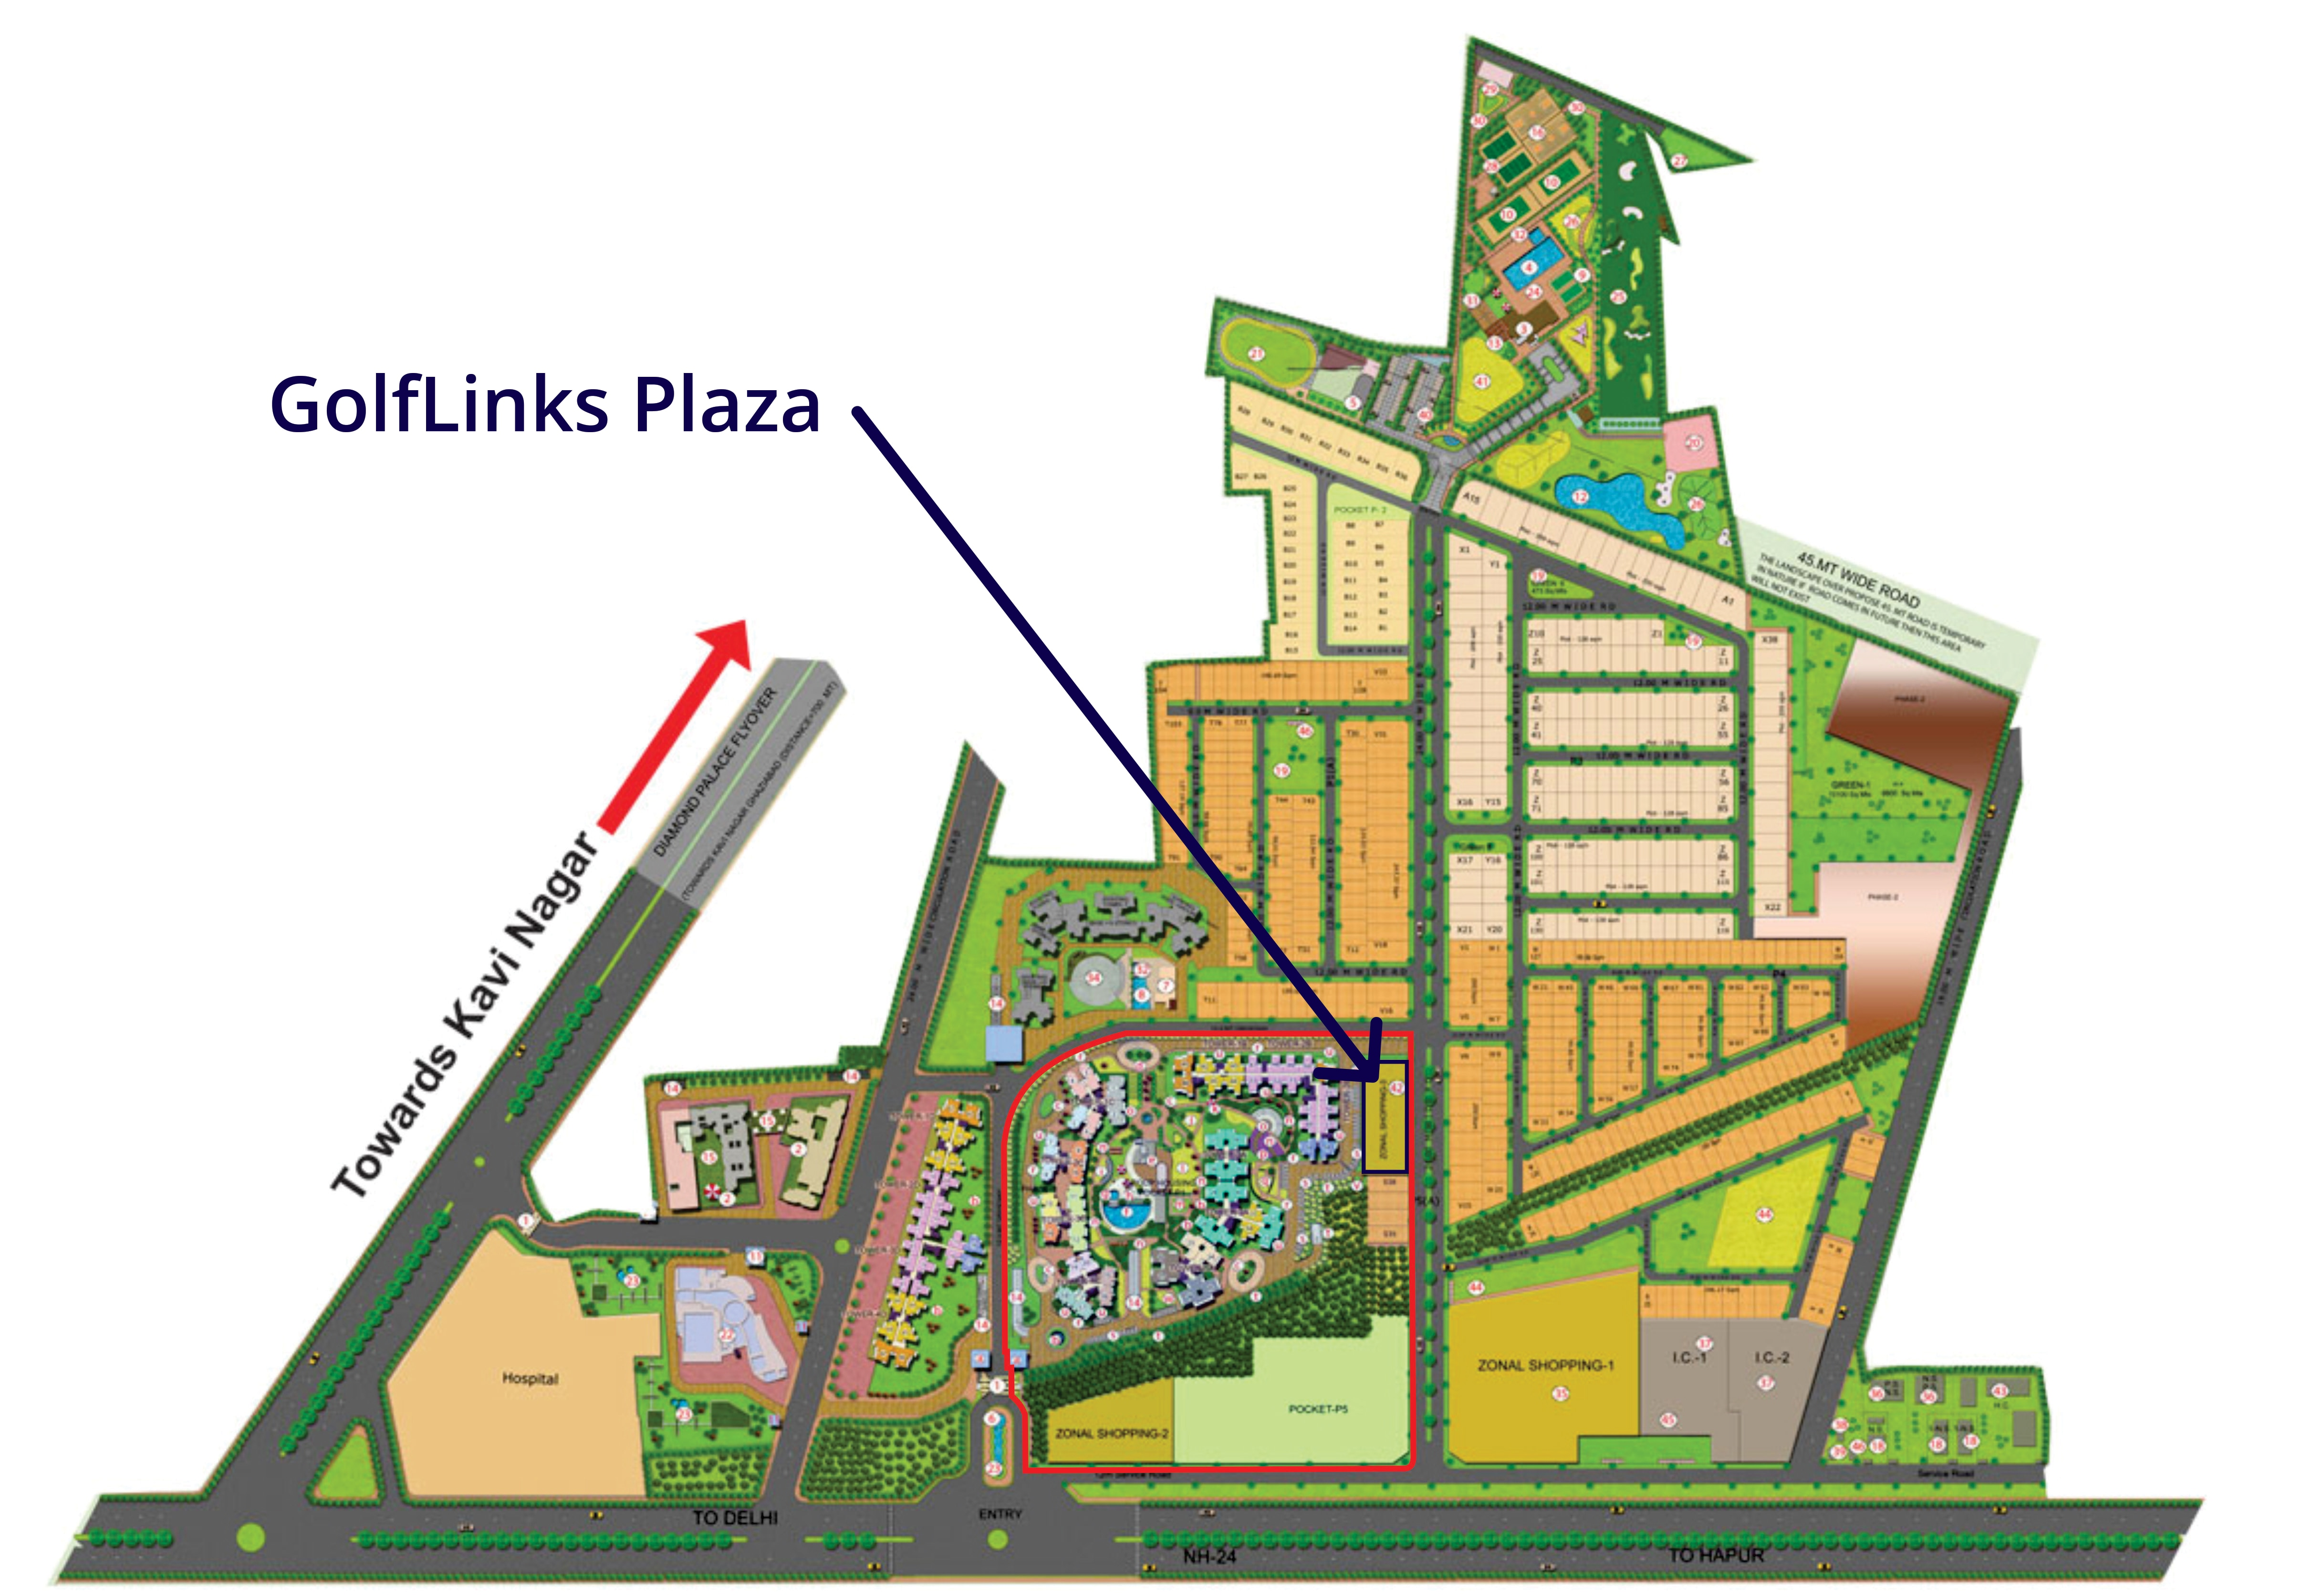 #golf link nh-24  #golflinks ghaziabad  #landcraft developers  #landcraft golf links  #landcraft golf links price list  #landcraft nh-24  #landcrafts  #organic home  #organic homes in ghaziabad  #skardi greens nh 24  #wave city nh24 ghaziabad   GOLF LINKS PLAZA- GolfLinks Plaza, located on NH-24 in GolfLinks, is one of the commercial developments of LandCraft Developers.